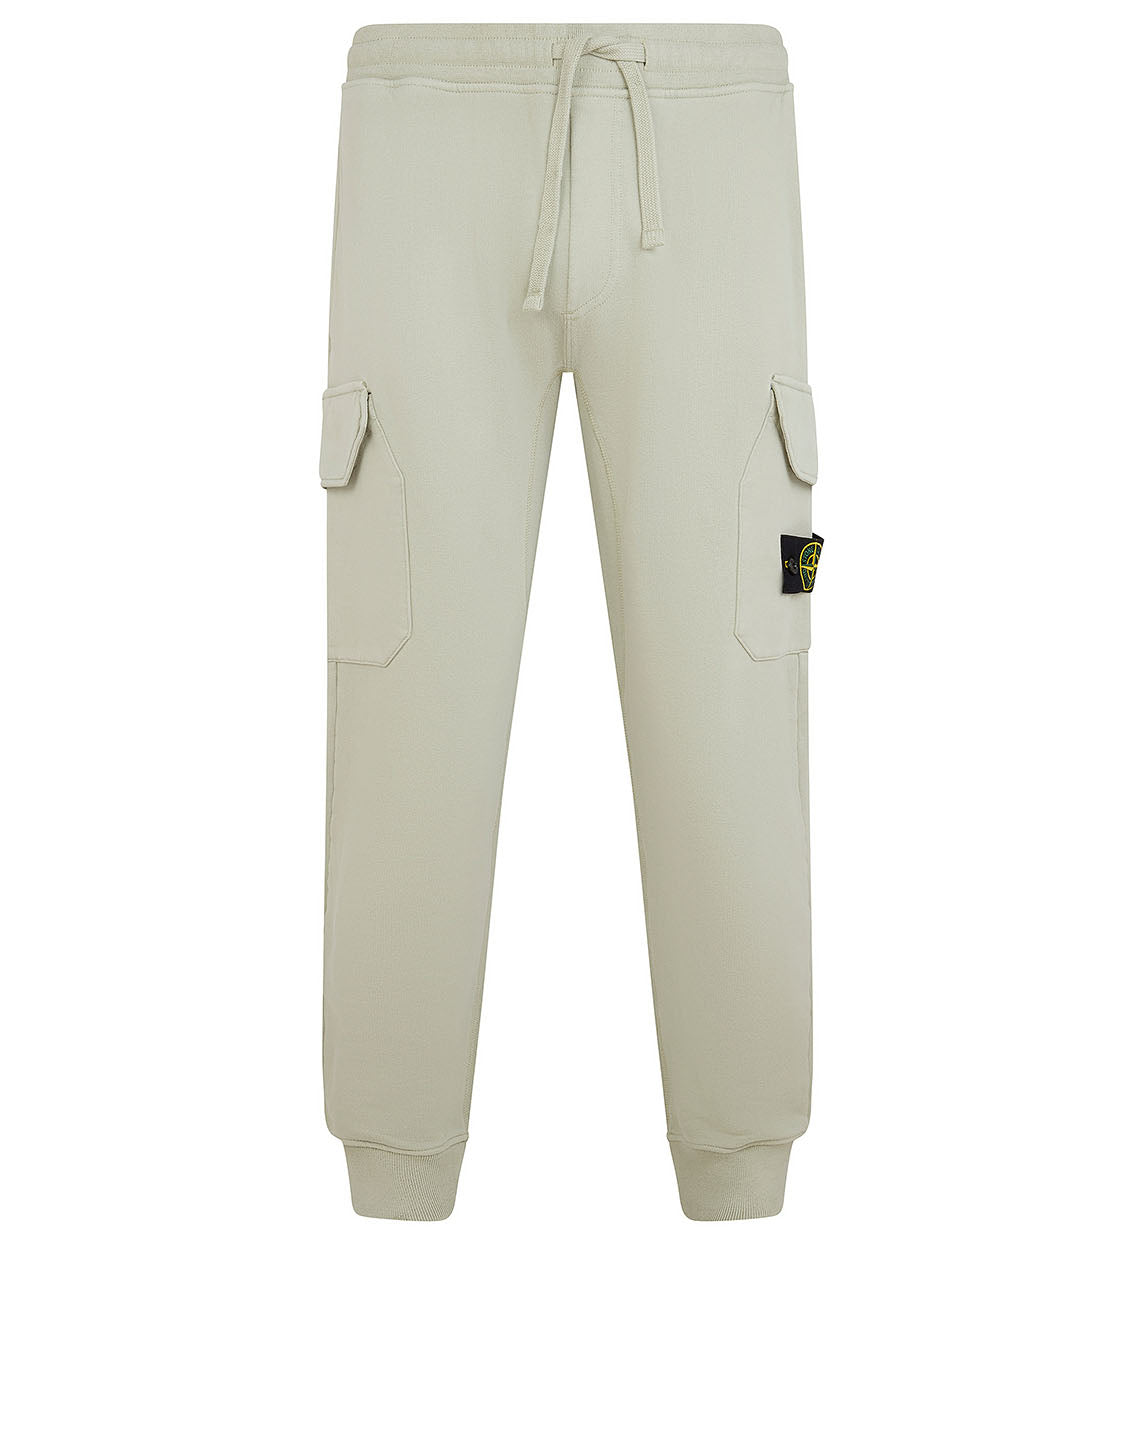 61120 Cargo Sweatpants in Dust